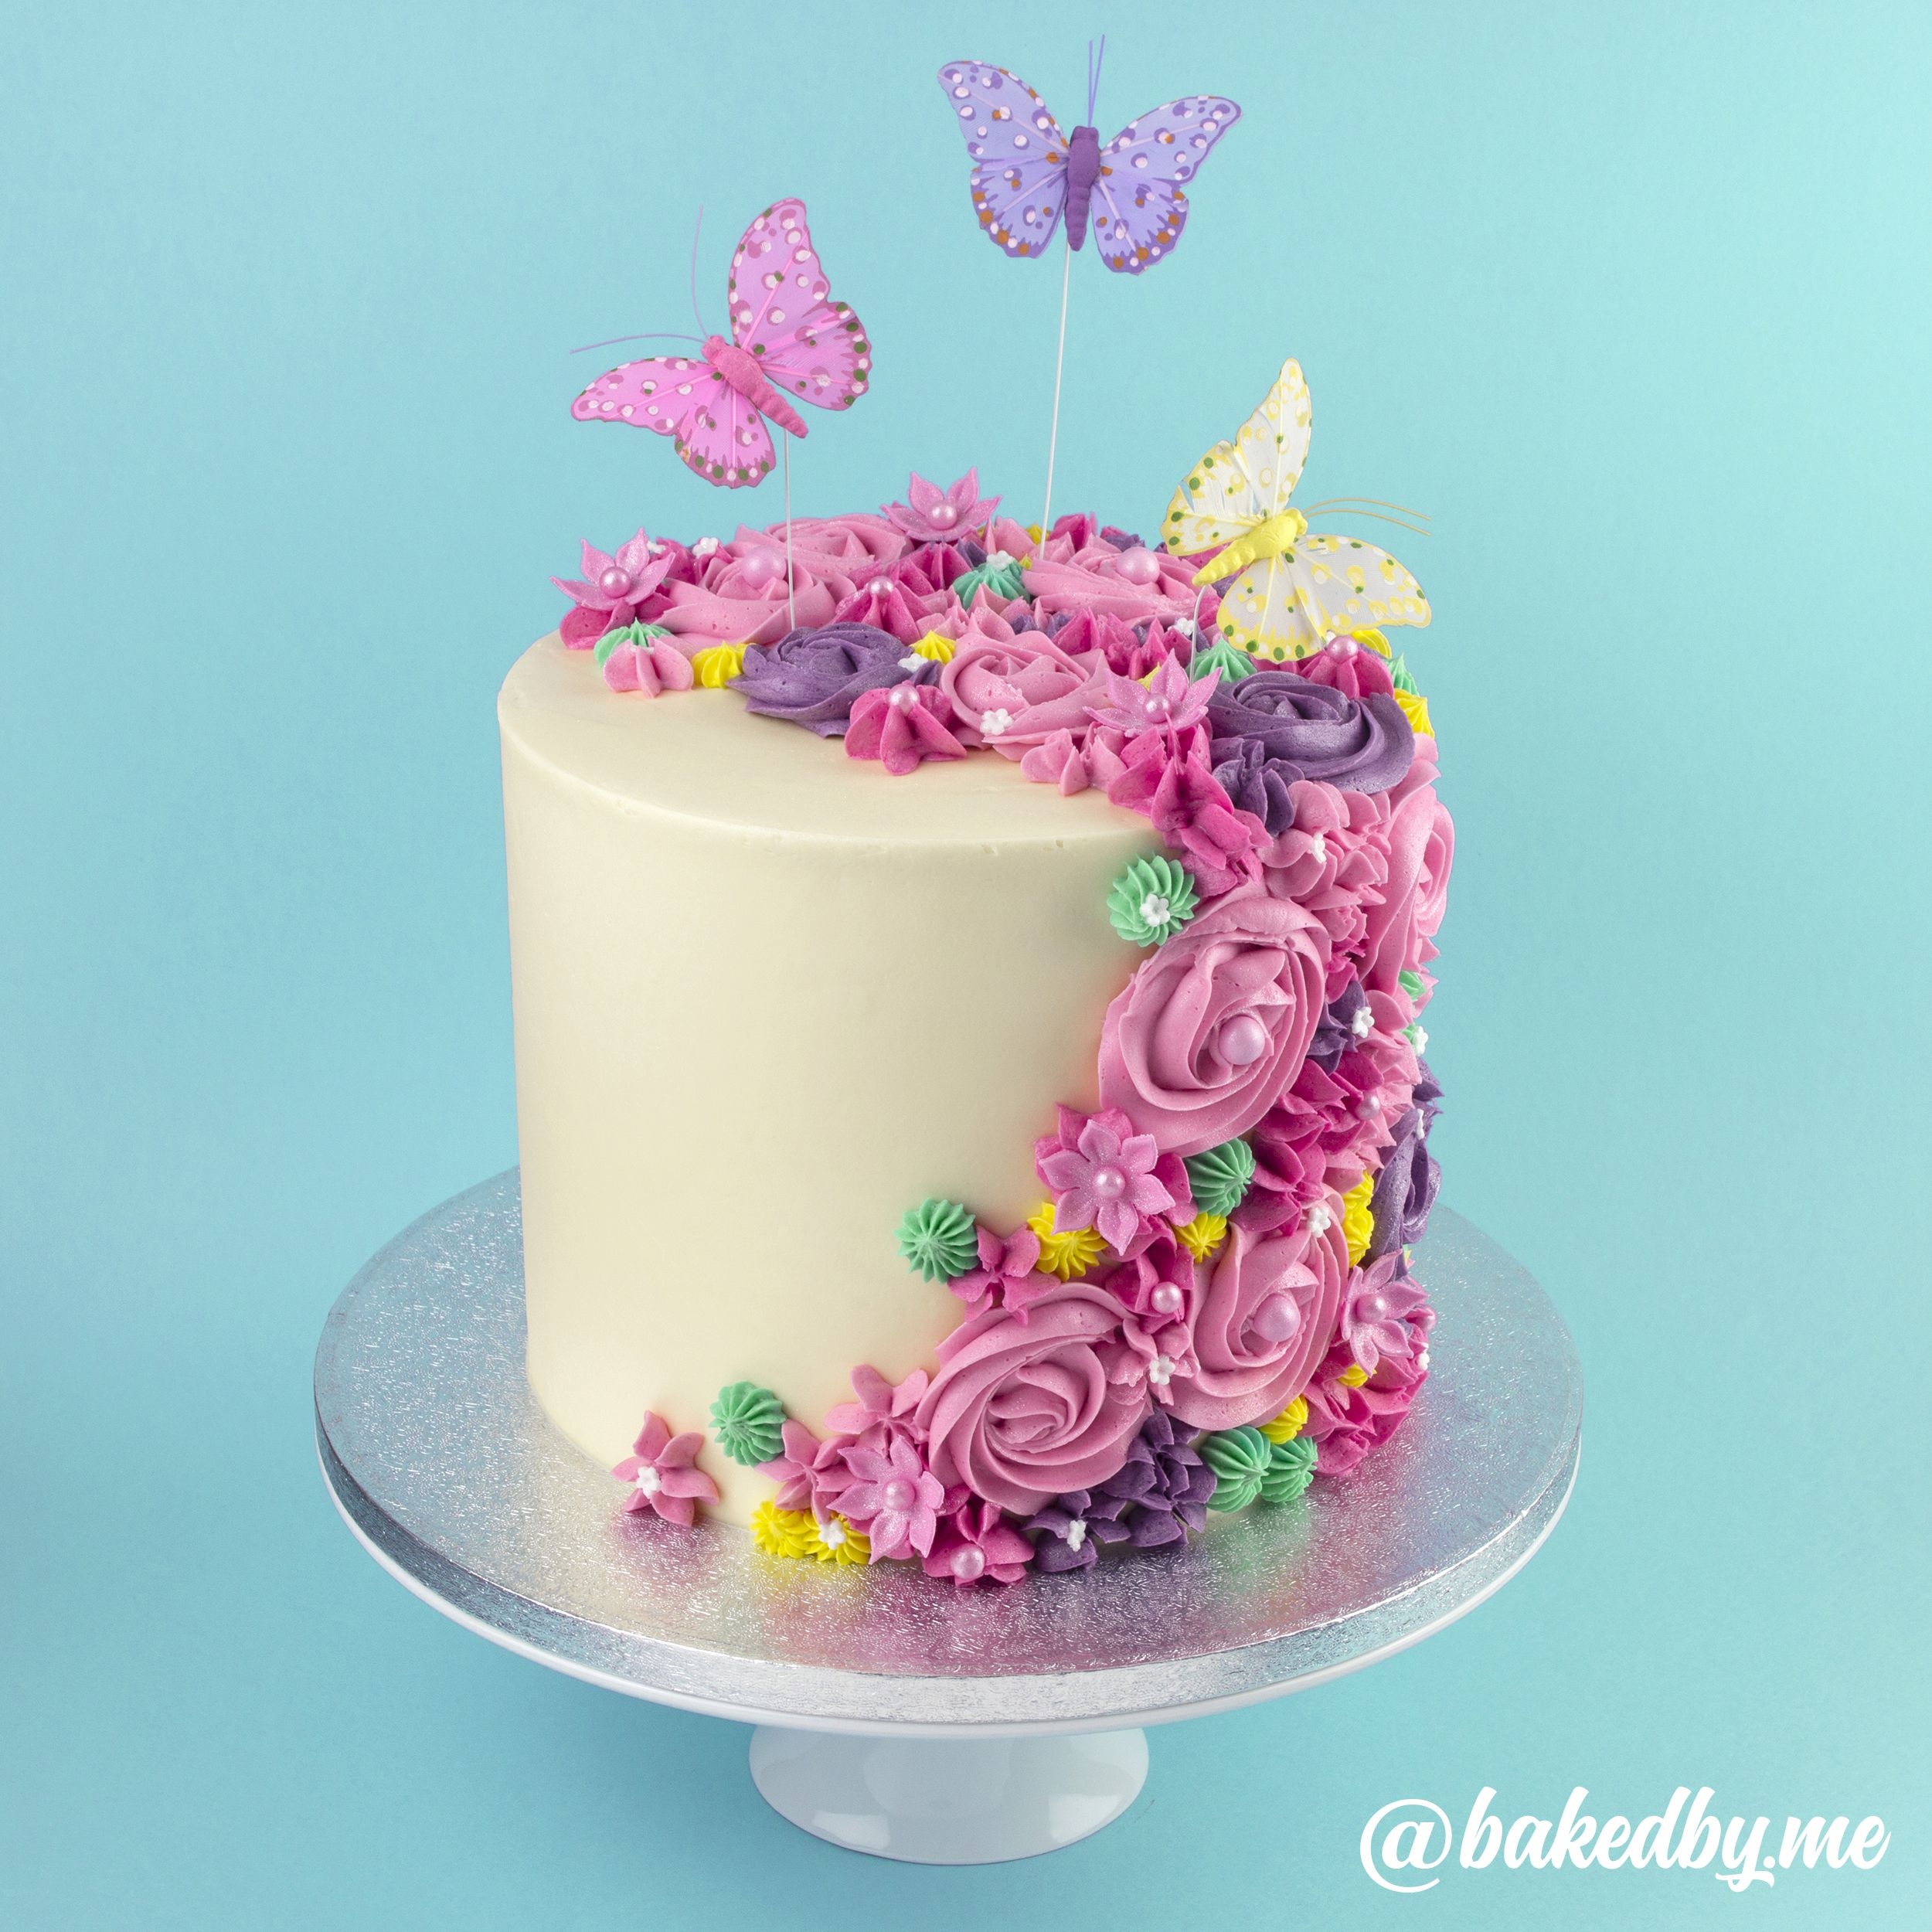 Miraculous Buttercream Butterfly Garden Cake 4 Layers Of Vanilla Sponge Funny Birthday Cards Online Alyptdamsfinfo